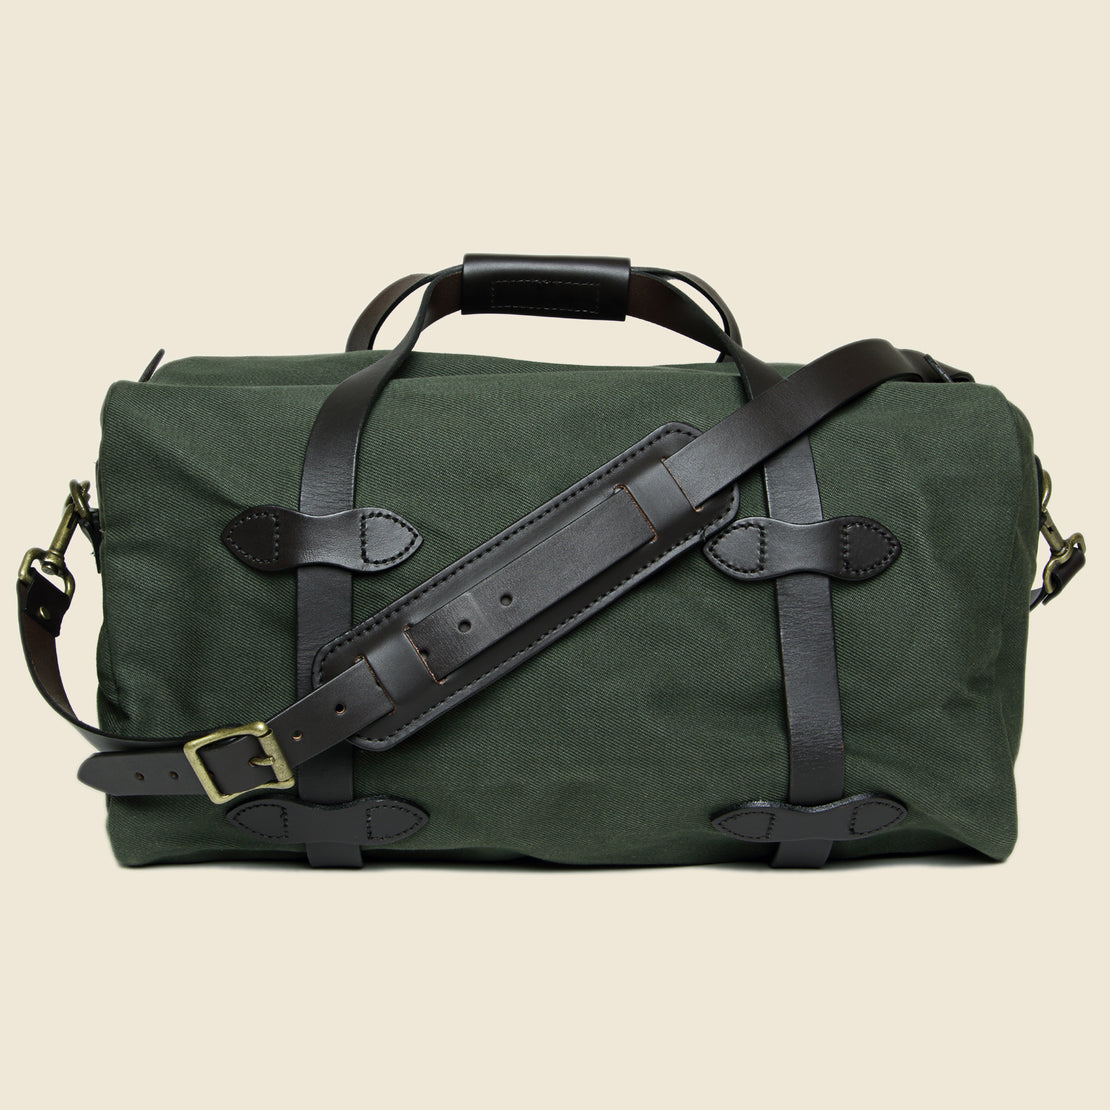 Small Duffle Bag - Otter Green